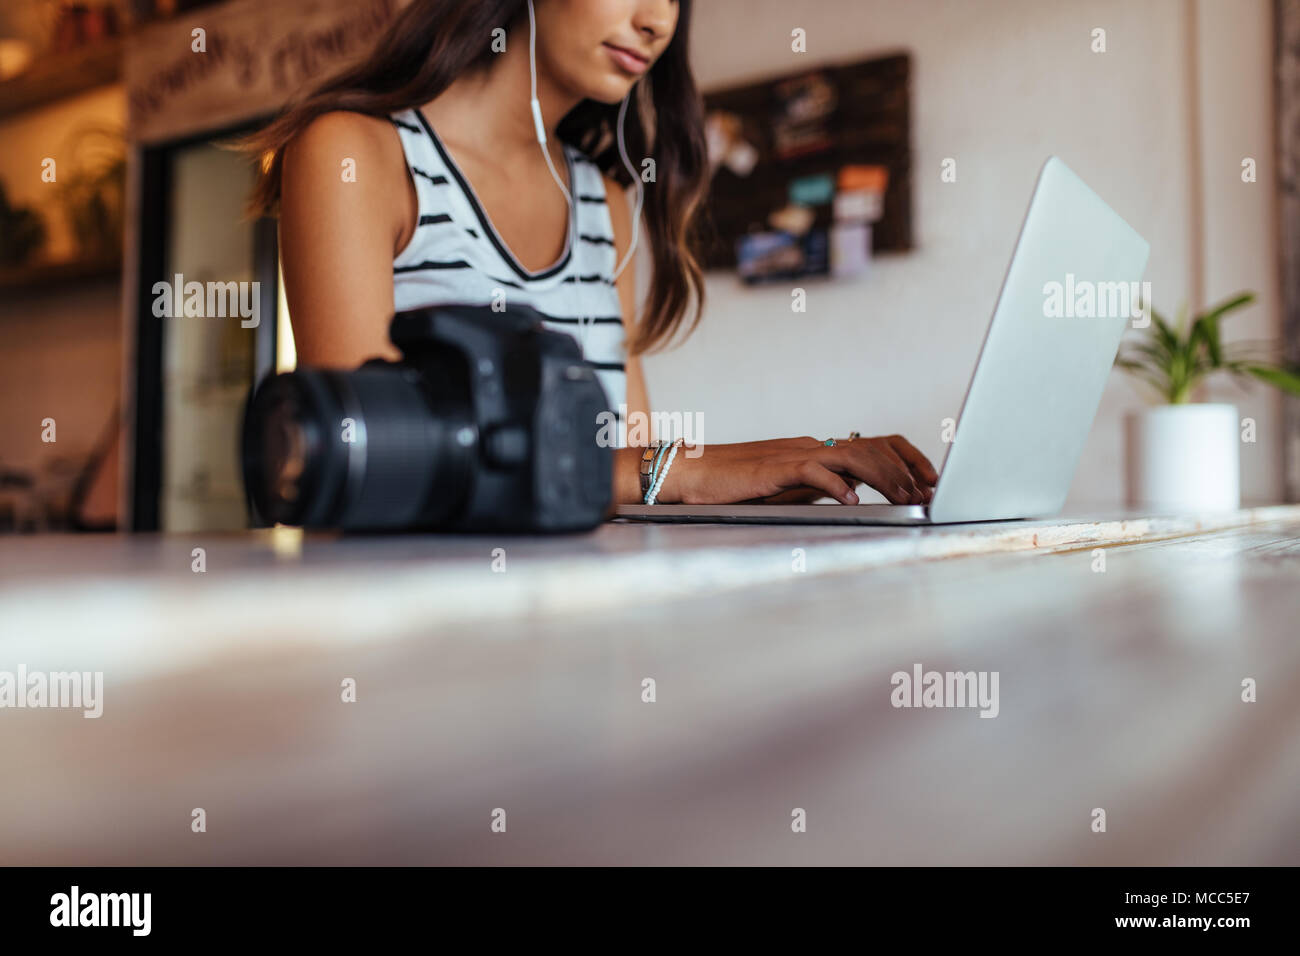 Woman blogger using laptop at home wearing earphones. Woman sitting with DSLR camera on the table working on her laptop computer. - Stock Image